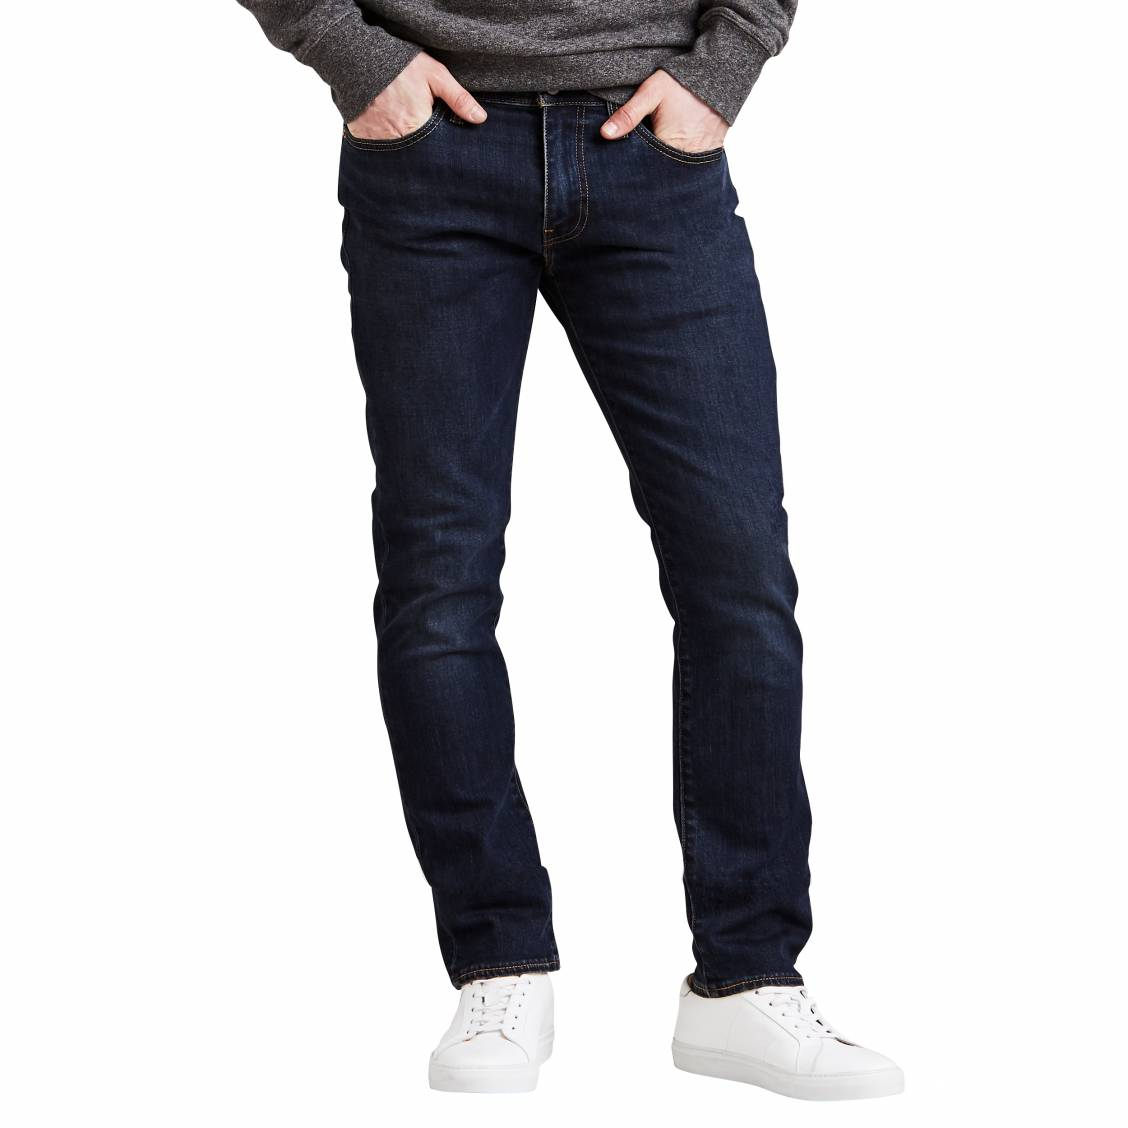 Bleu Coton Jean Levi's Fit Stretch Slim Brut Adapt Zebroid En 511 Bg1zwBA